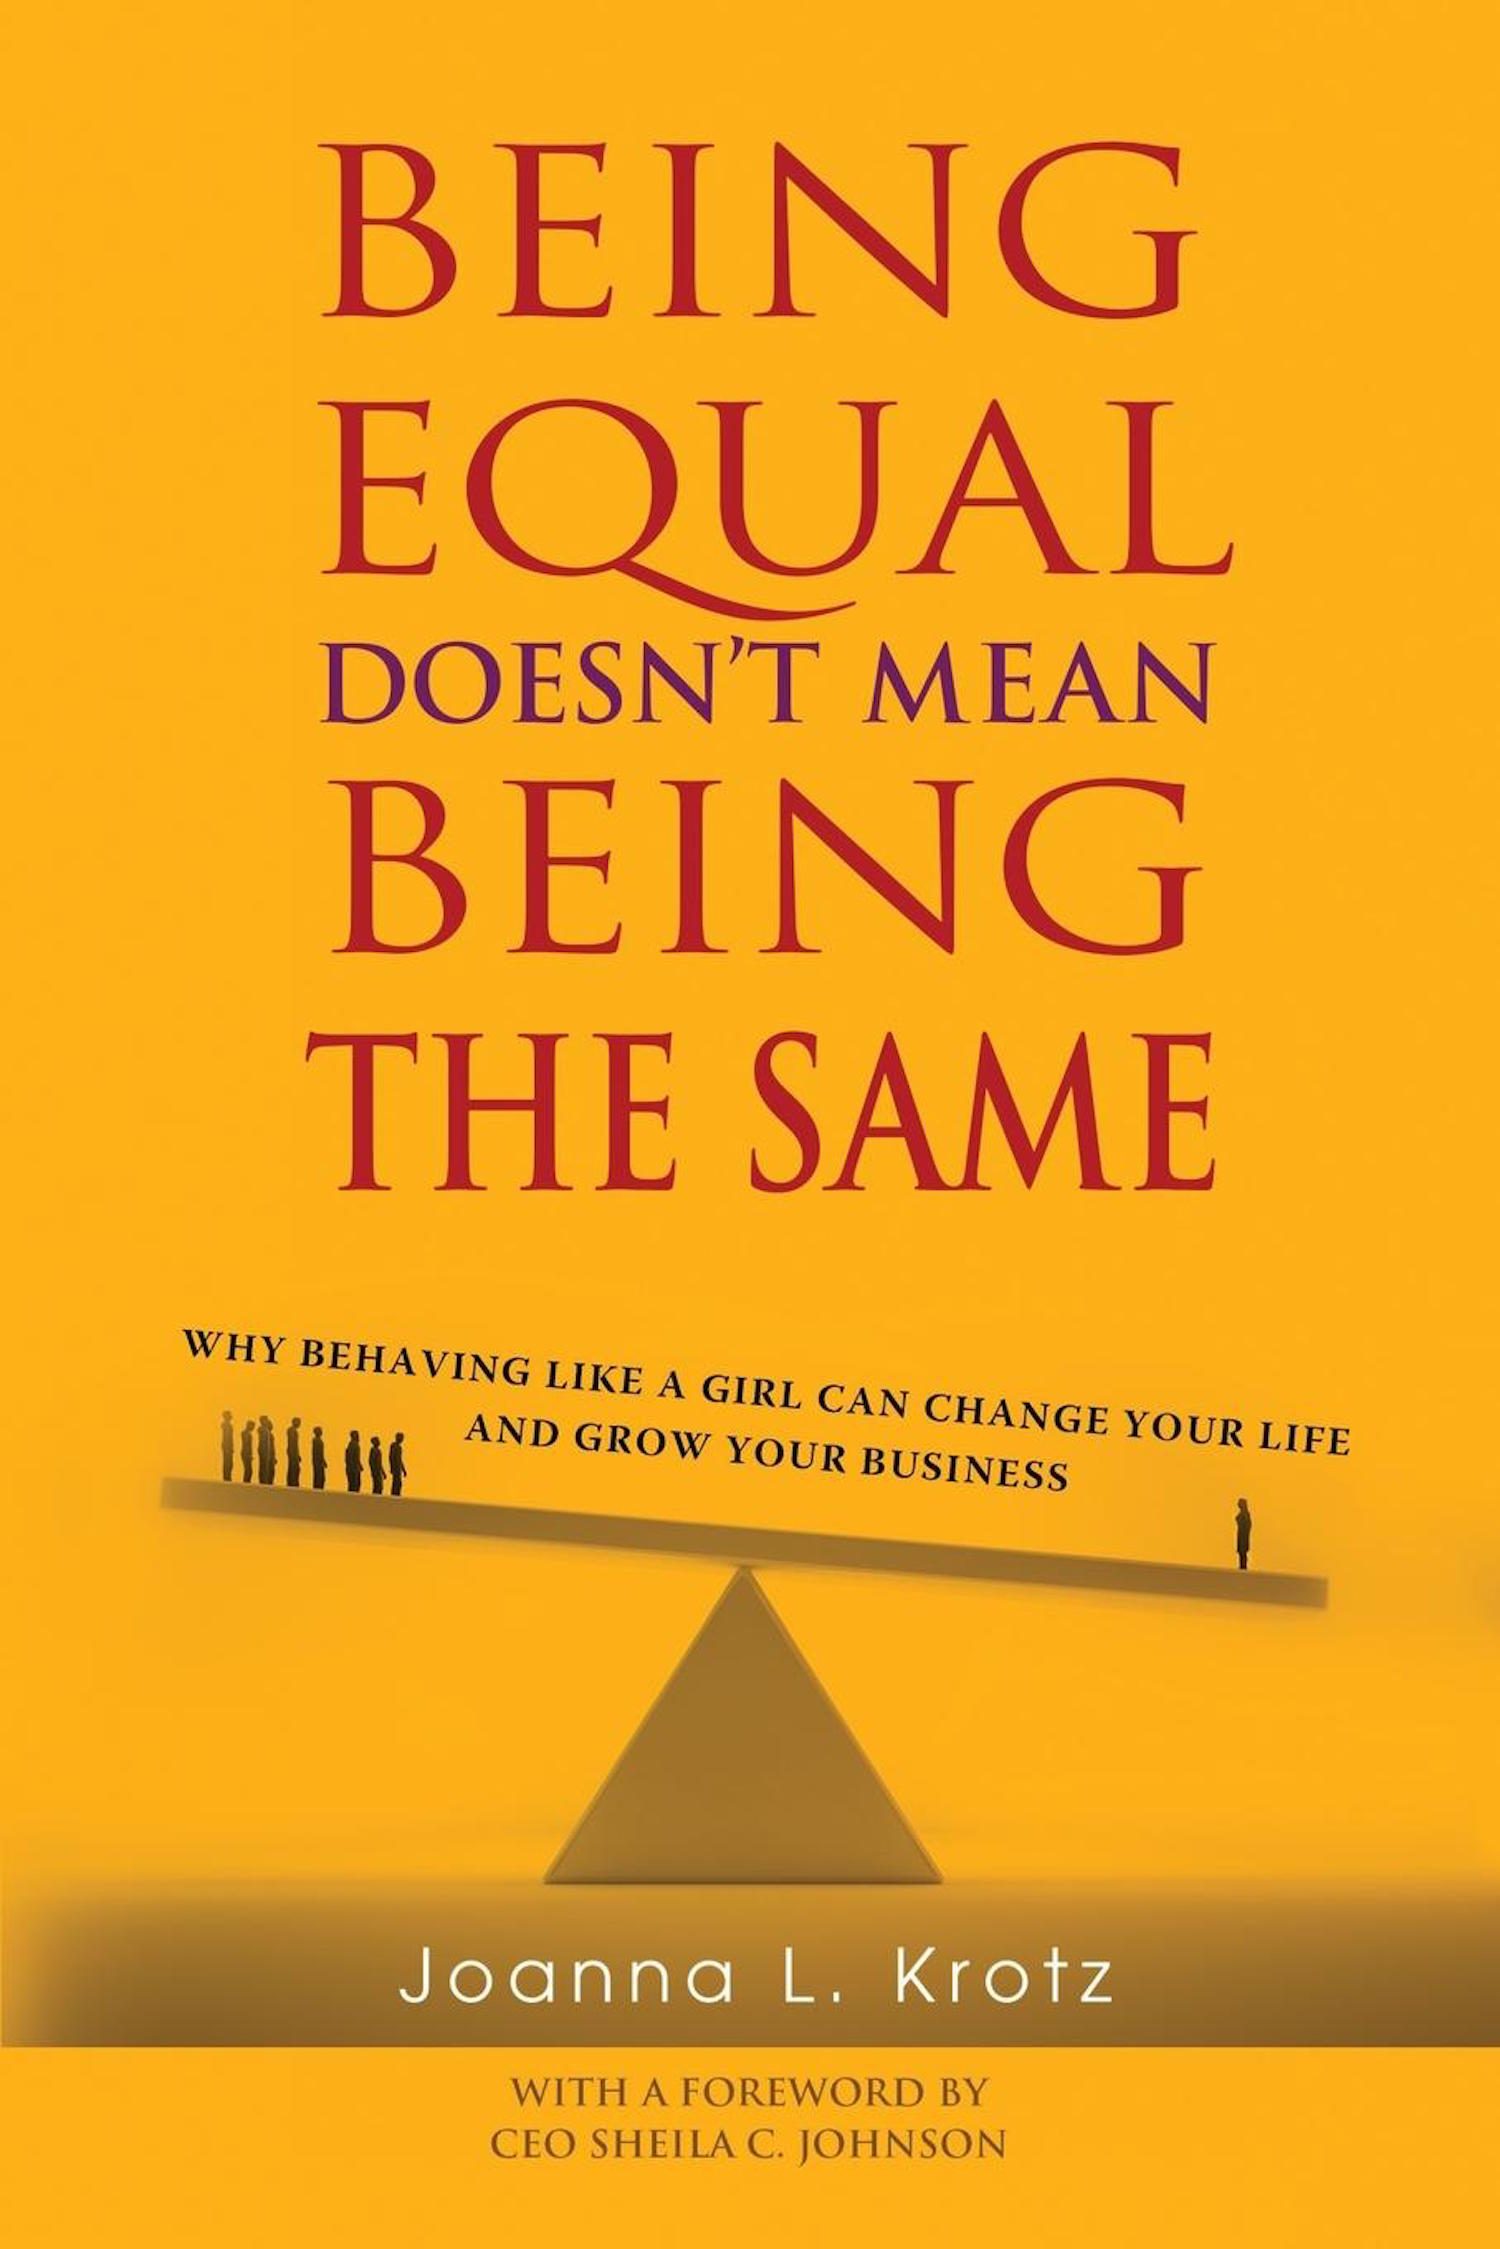 Being Equal Doesn't Mean Being The Same